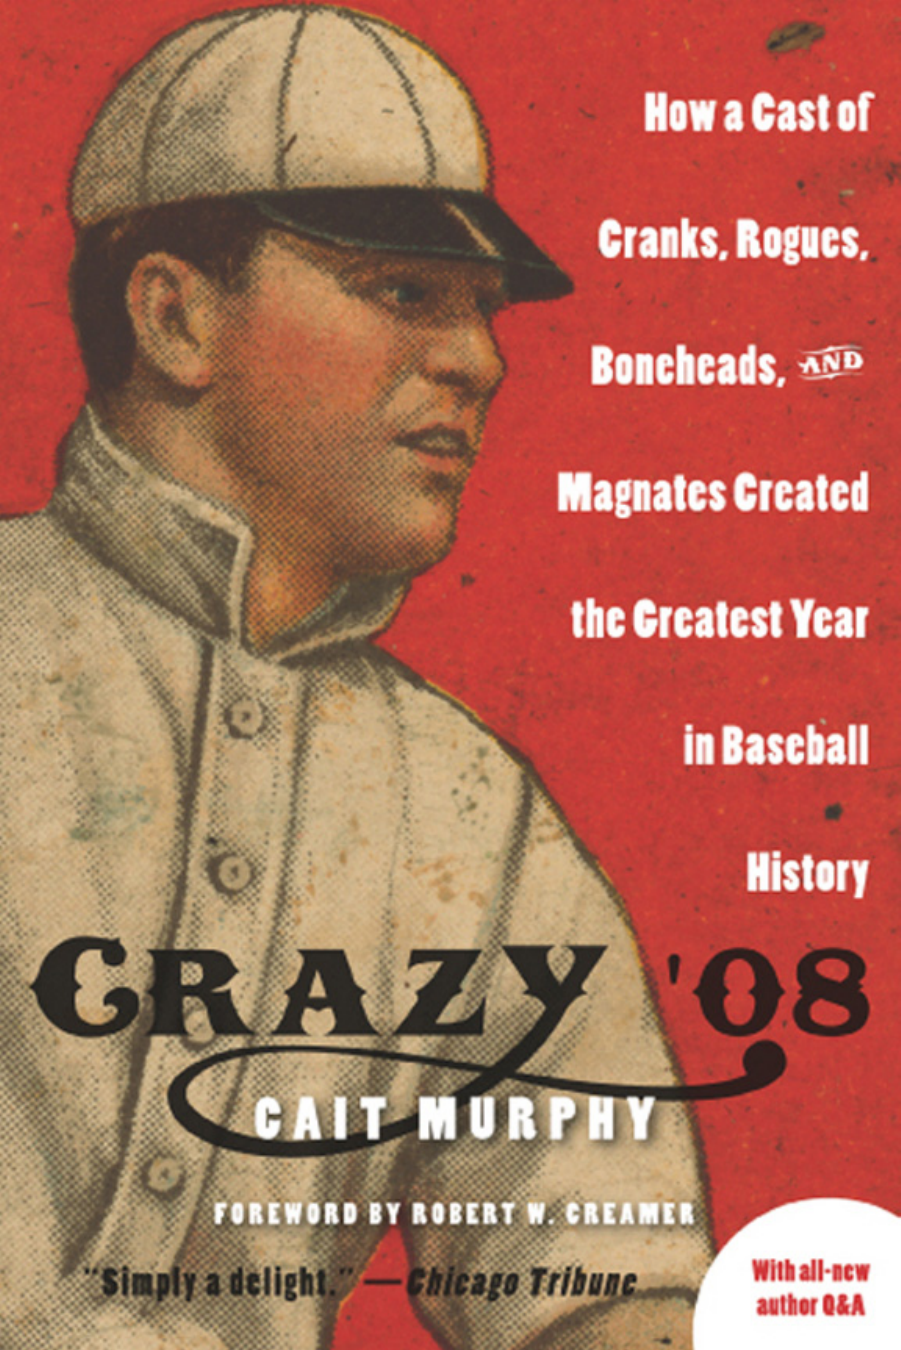 e6849669046 Cait N. Murphy - Crazy 08- How a Cast of Cranks Rogues Boneheads and  Magnates Created the Greatest Year in Baseball History (2007)